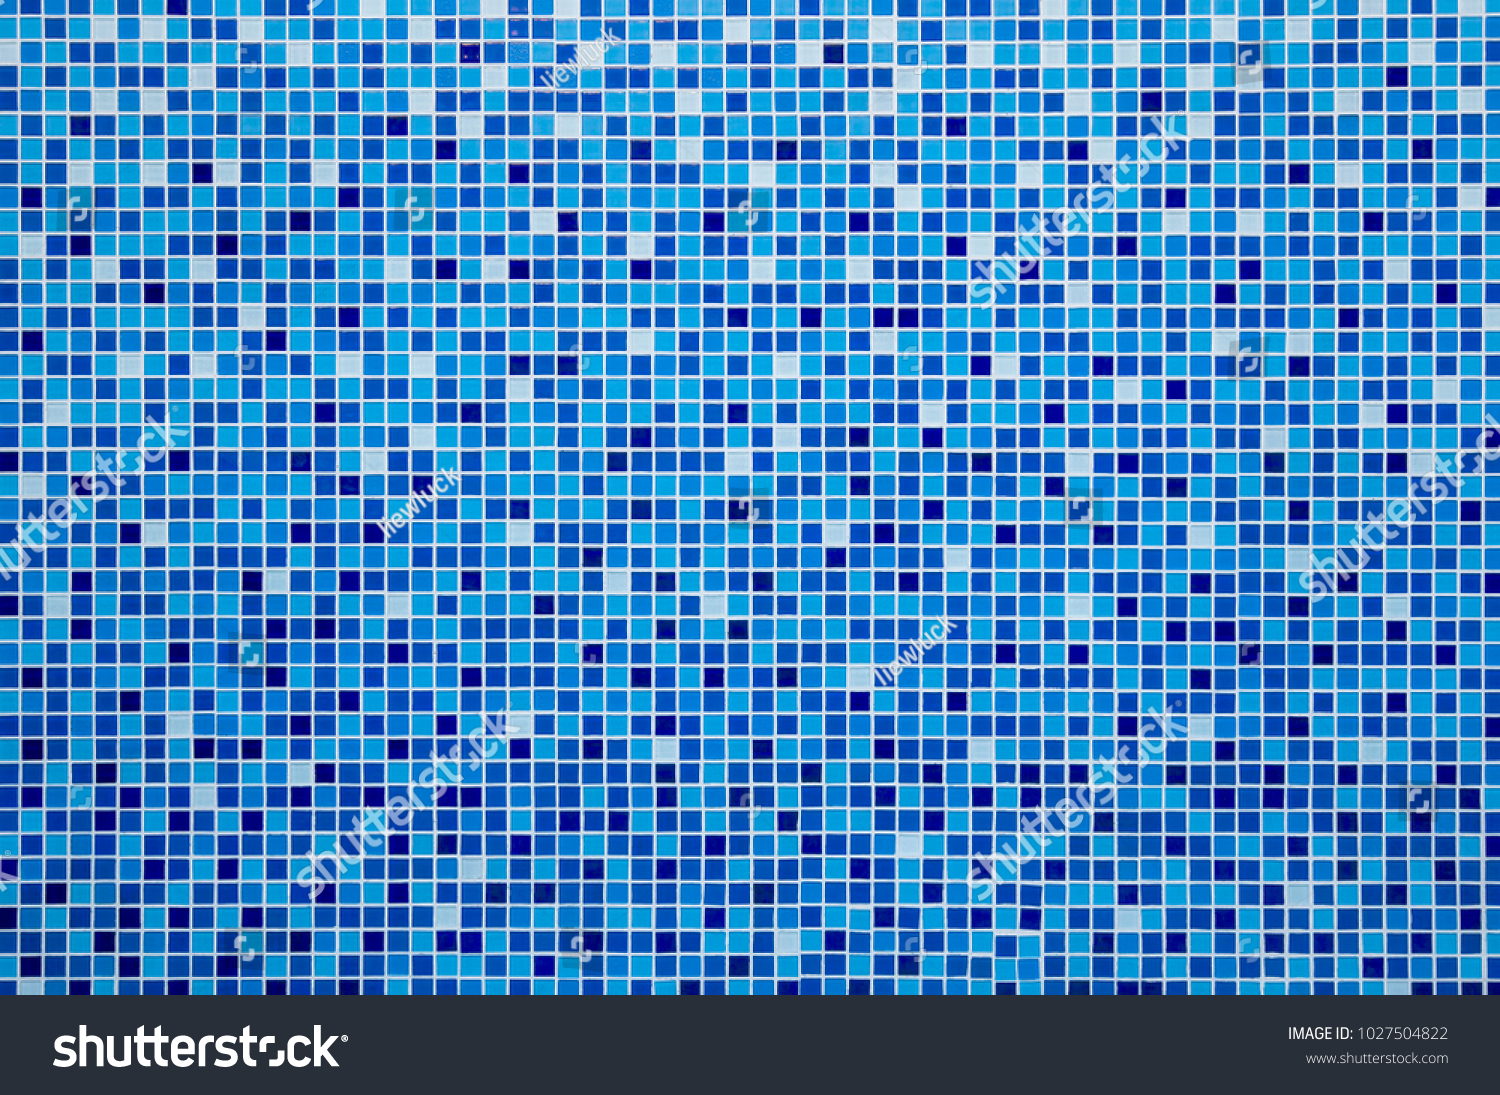 Blue Ceramic Tile Mosaic Swimming Pool Stock Photo (Safe to Use ...